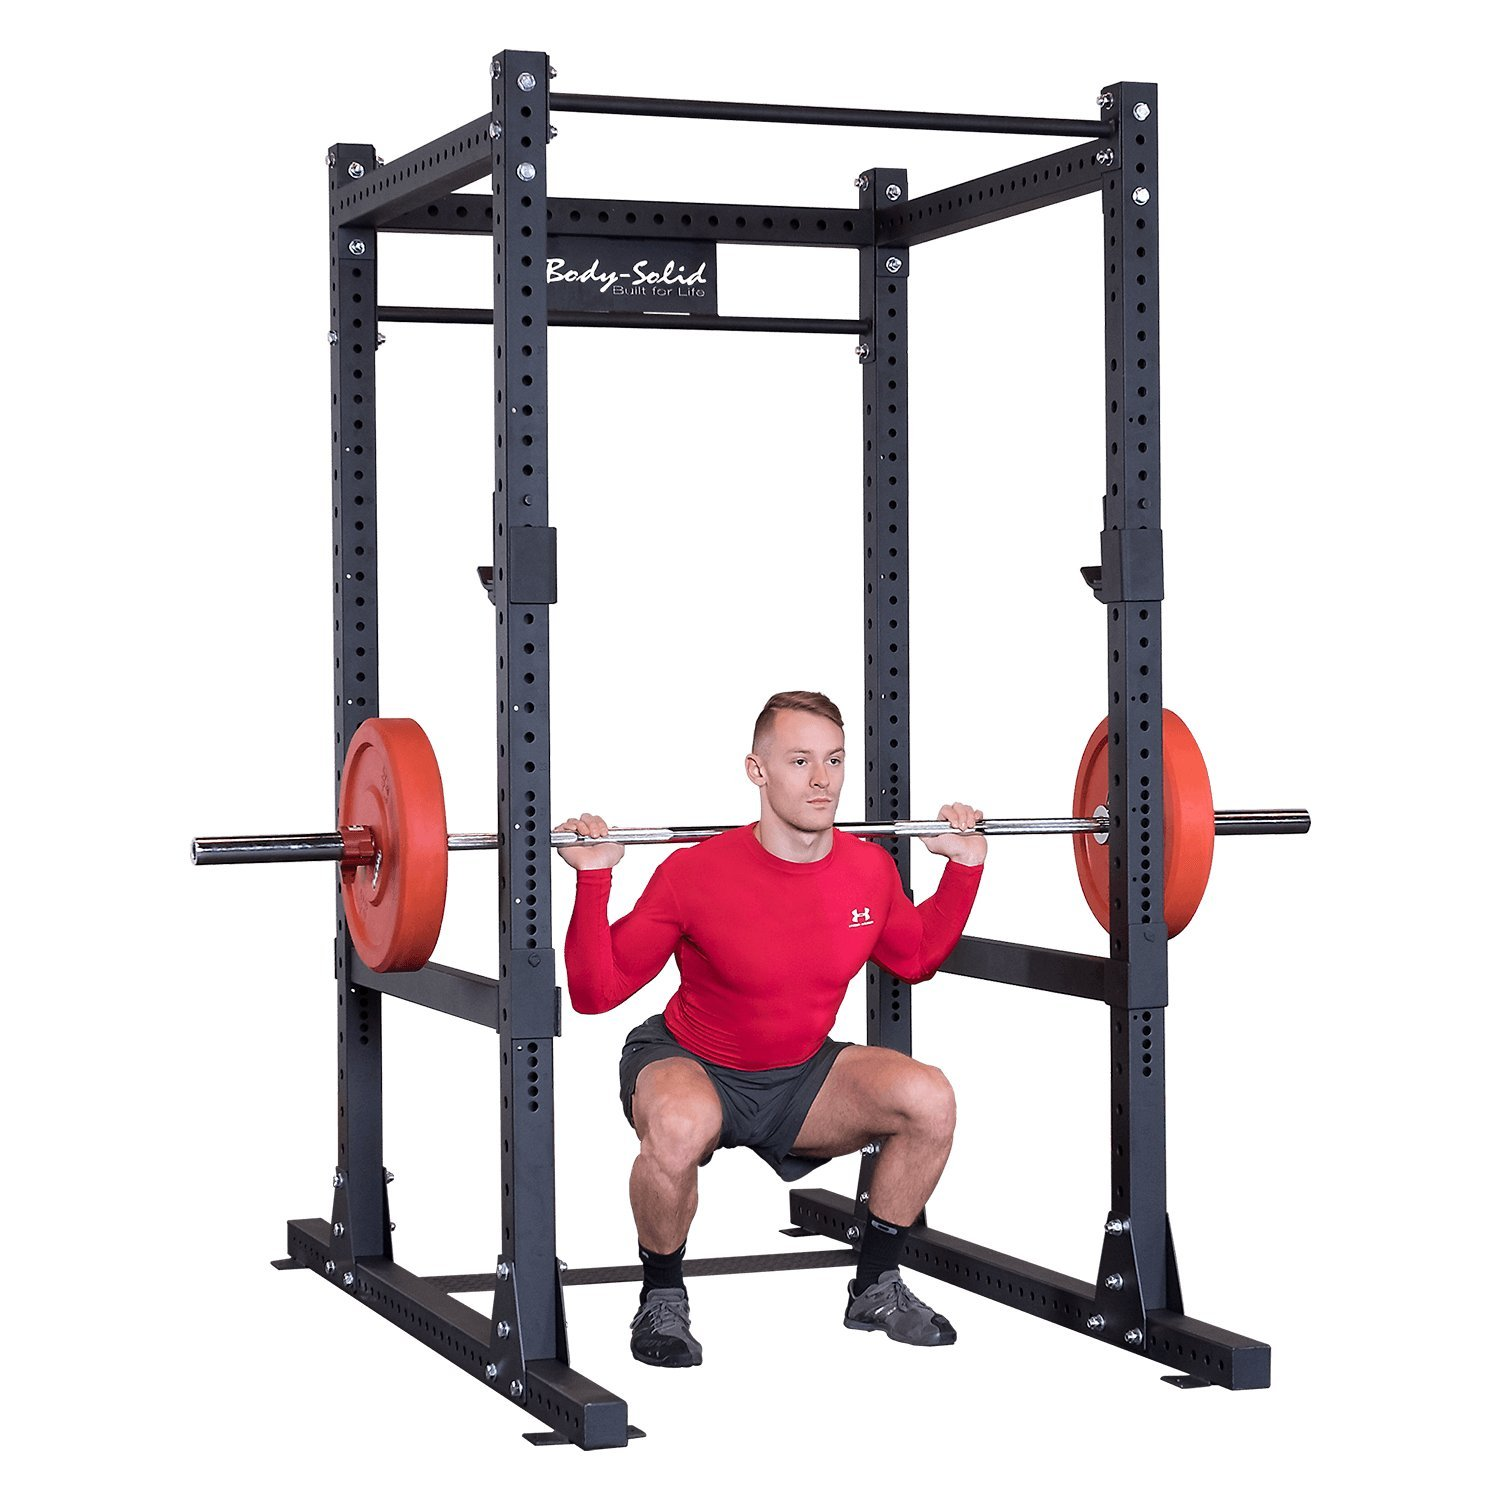 Body-Solid SPR1000 Commercial Power Rack